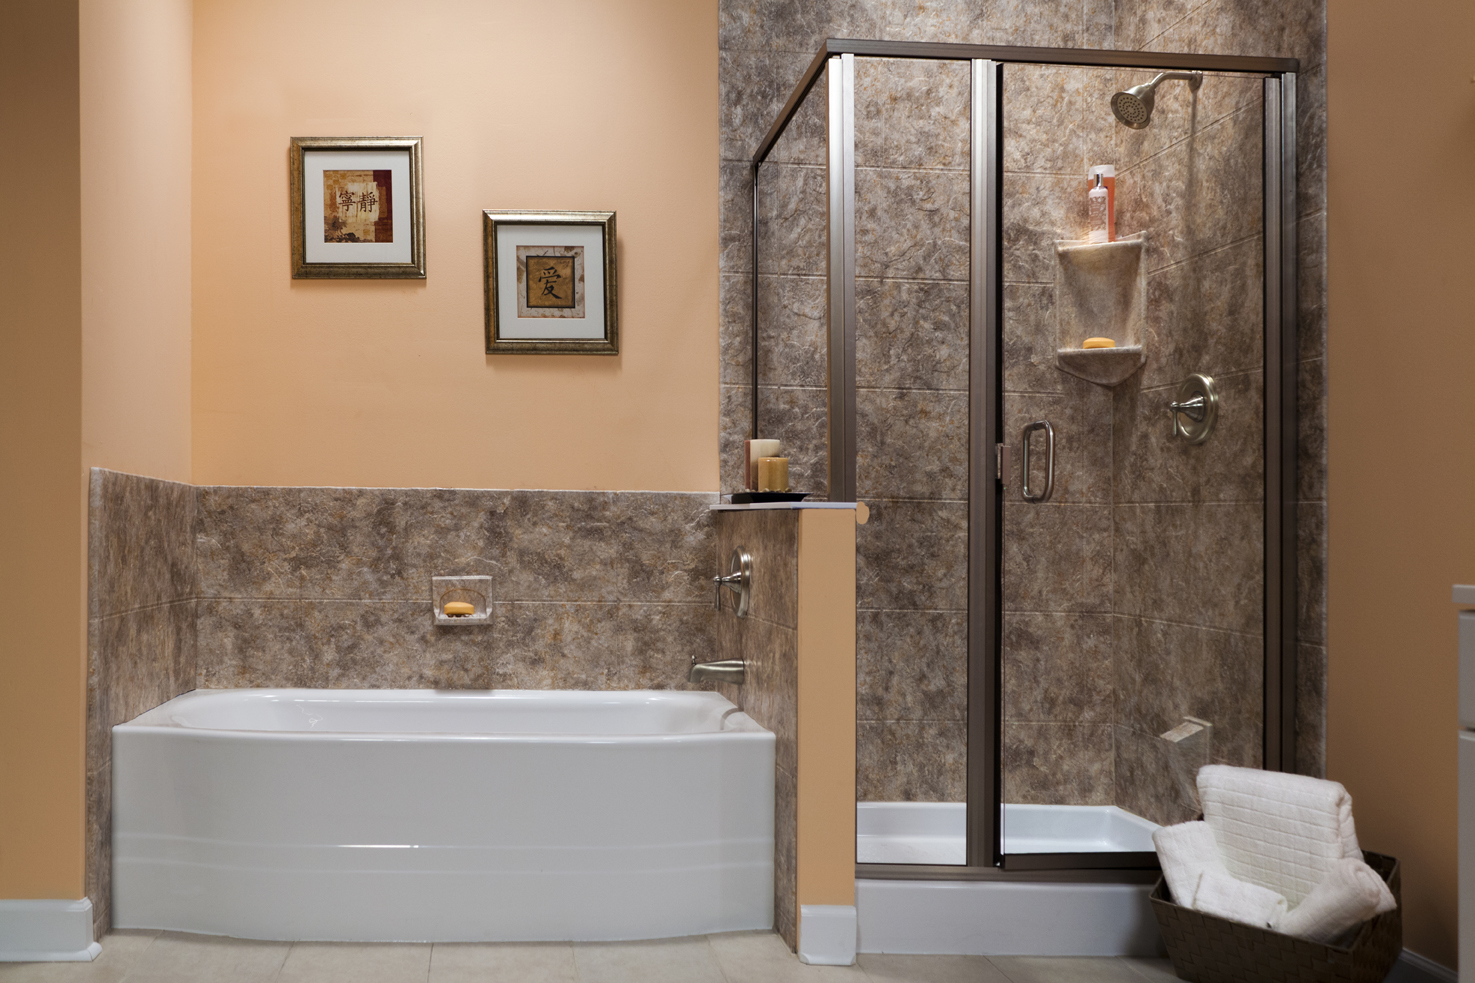 White_Curved_Bath_and_White_Shower_Base_with_River_Rock_12x12_Walls__Brushed_Nickel_Photo2_IMG_0975_LR_bci